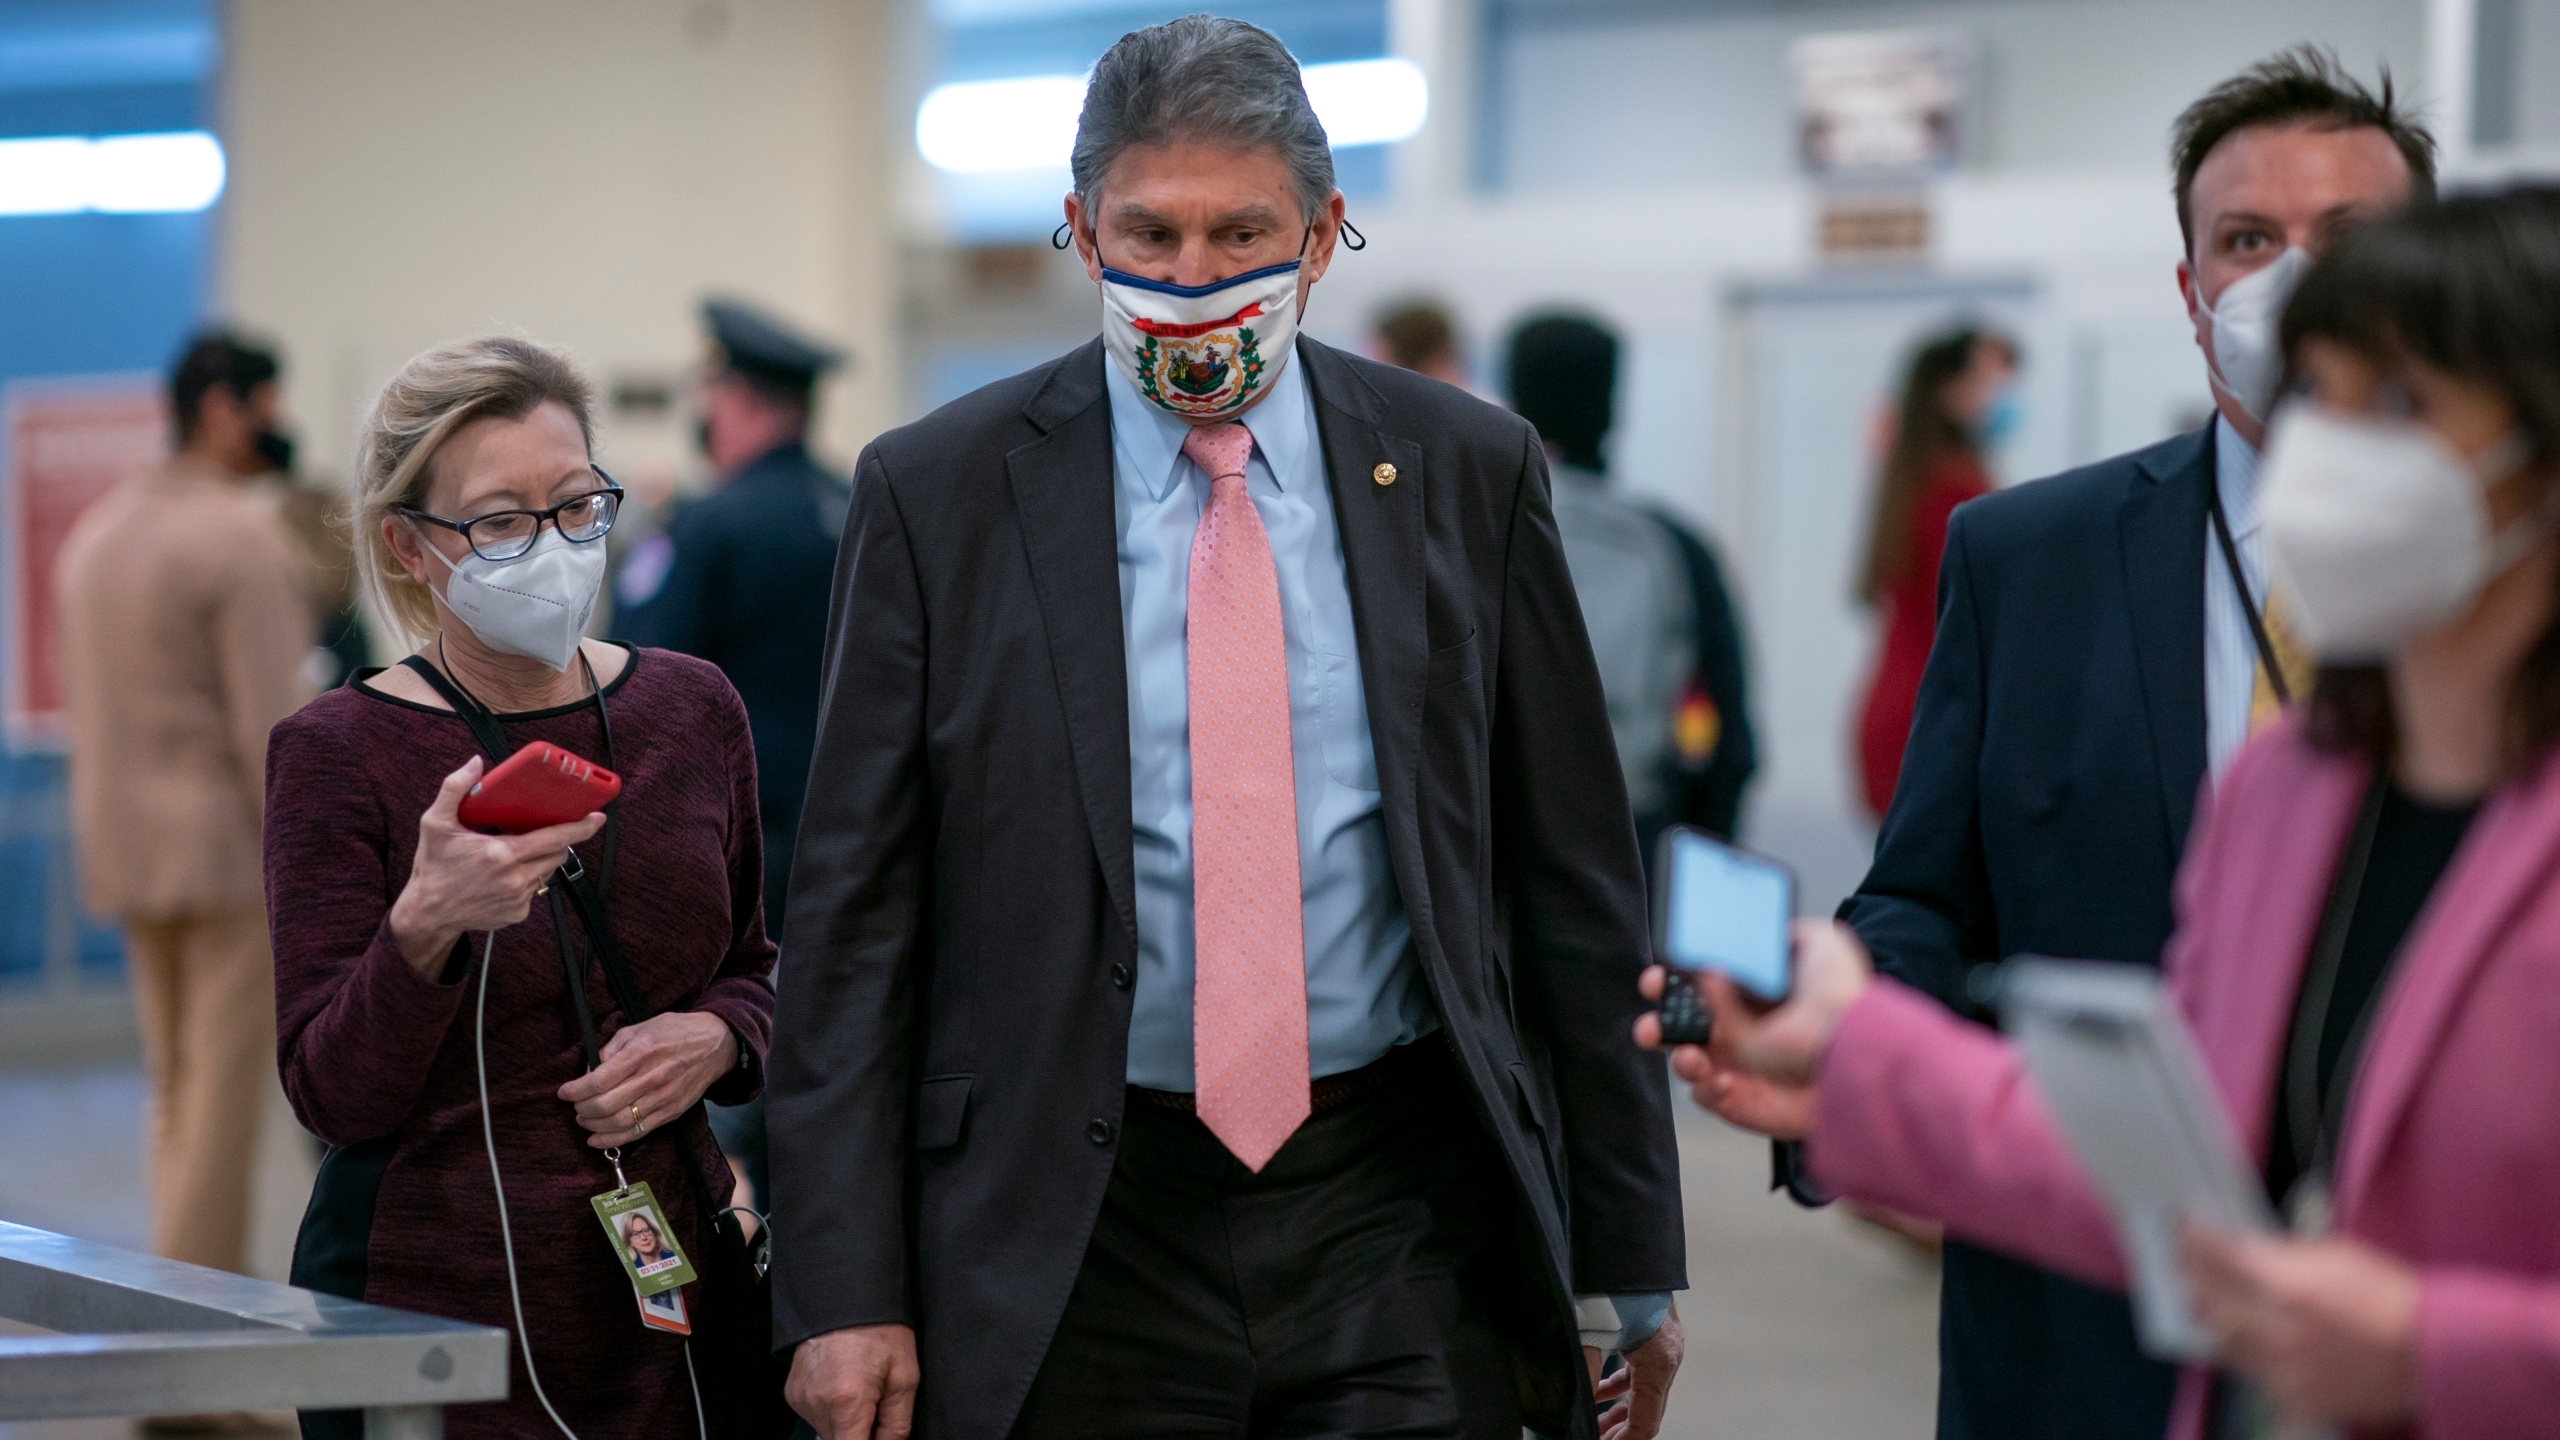 In this Feb. 25, 2021, file photo, reporters question Sen. Joe Manchin, D-W.Va., as he arrives for votes on President Joe Biden's cabinet nominees, at the Capitol in Washington. (AP Photo/J. Scott Applewhite, File)